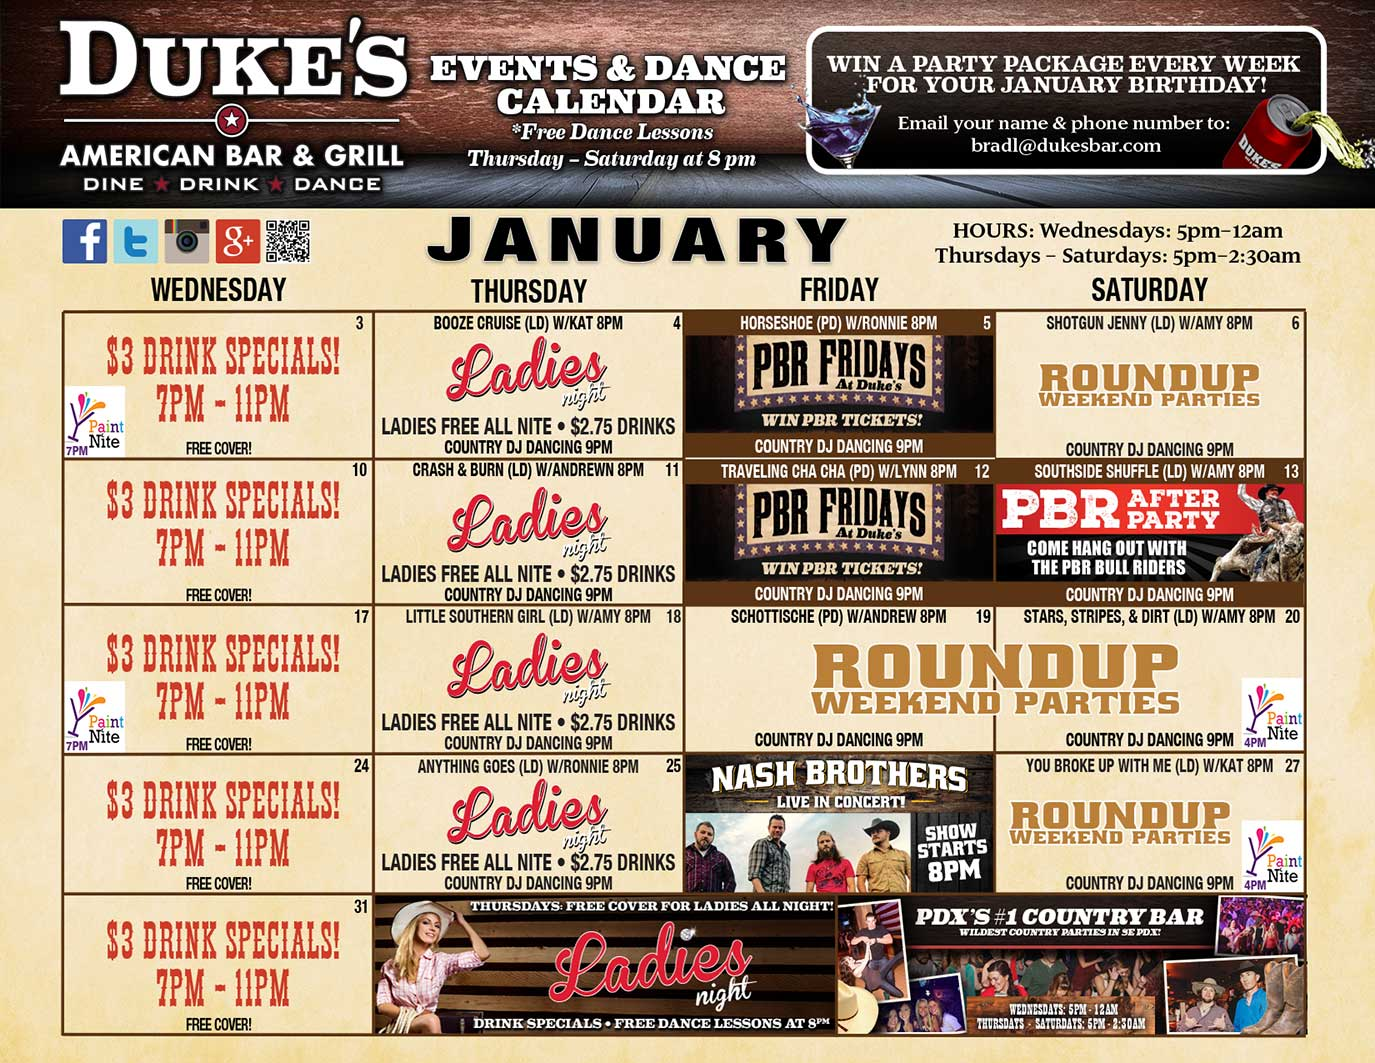 January Events and Dance Calendar